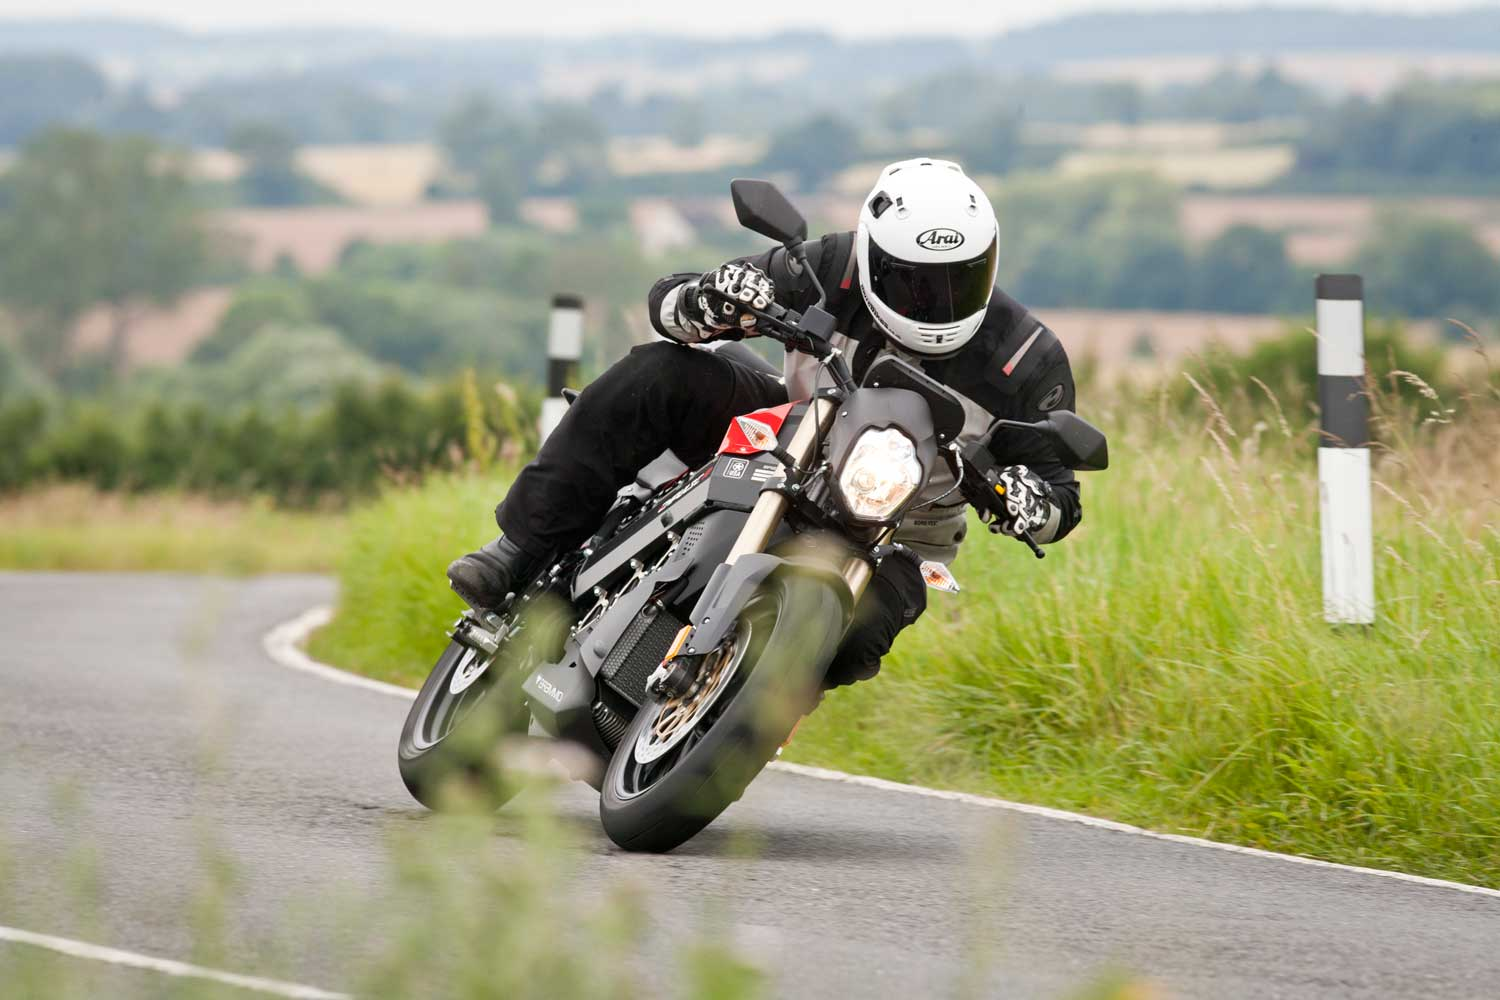 Are we destined to a future solely of electric motorcycles?